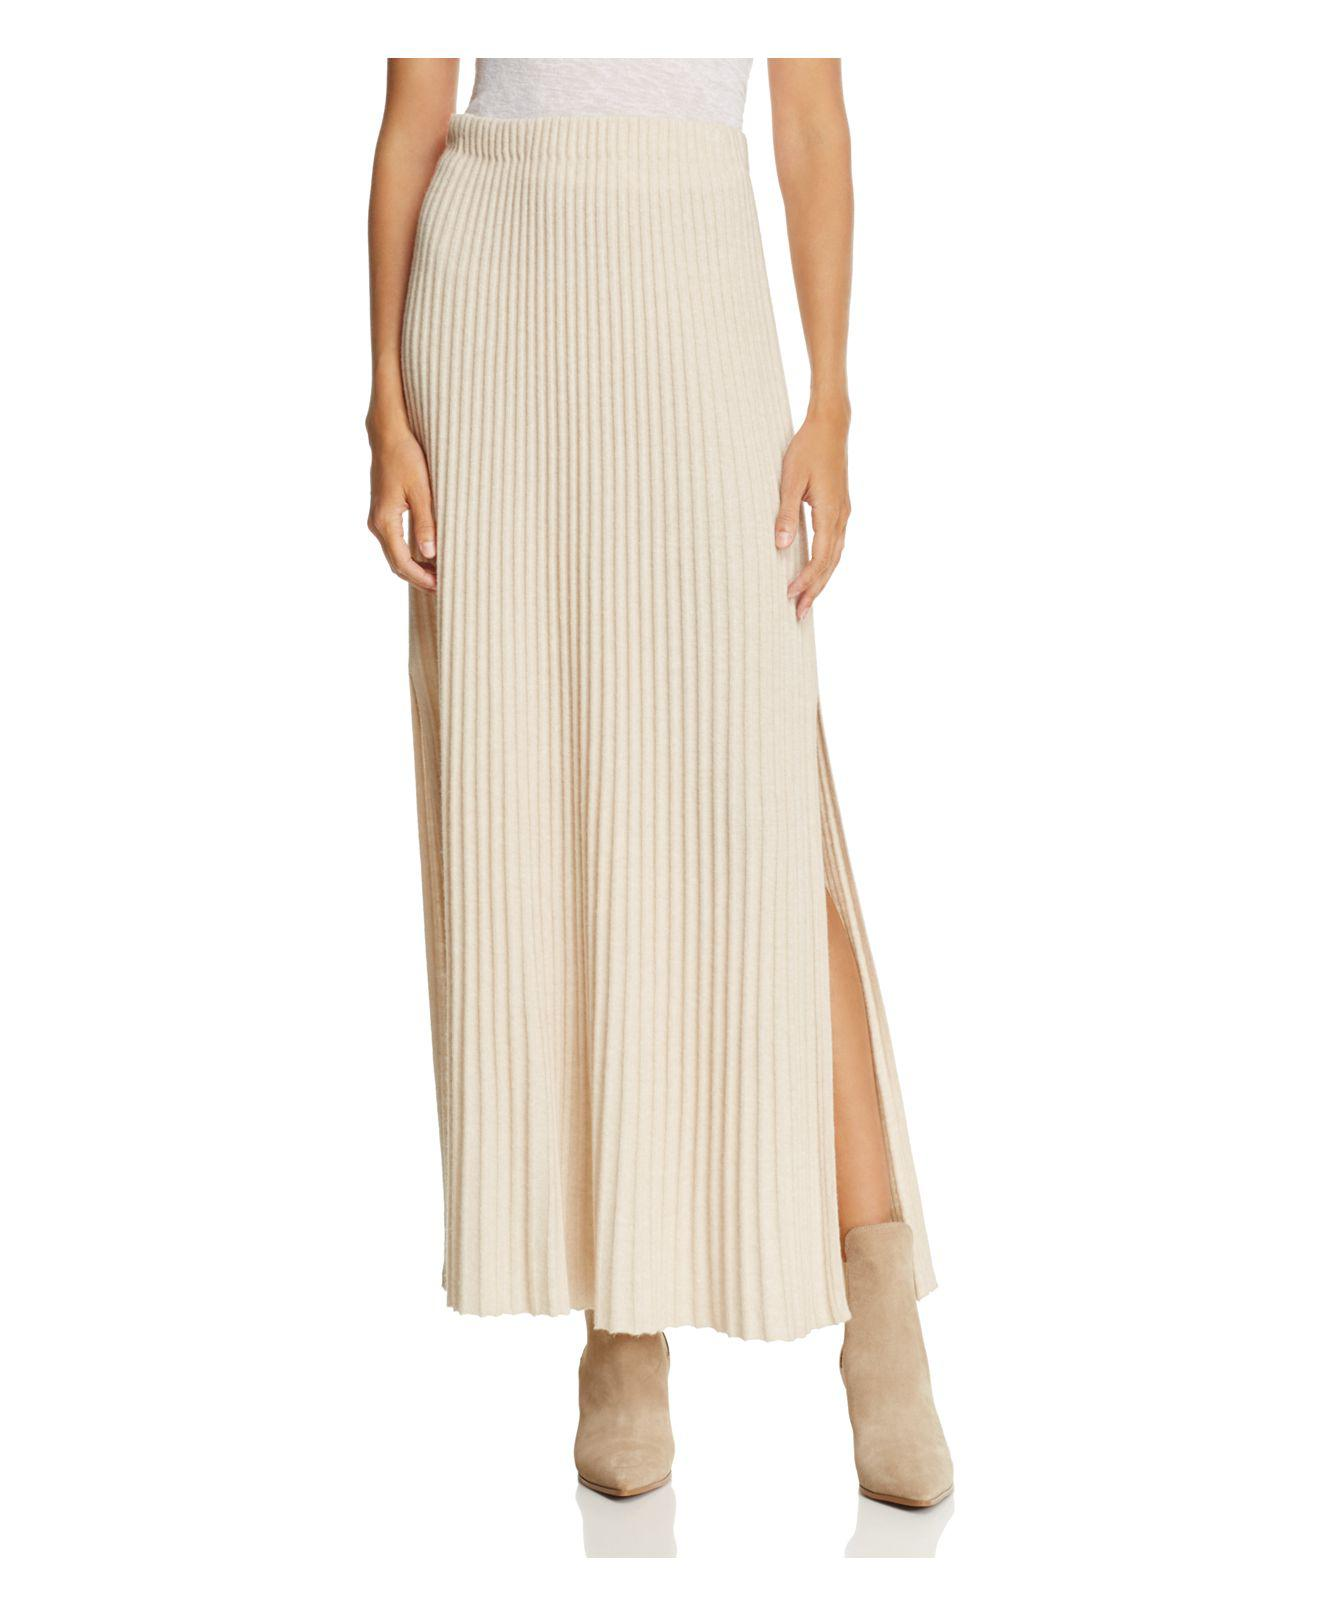 7386dad6a9 Elizabeth and James Joelle Ribbed-knit Maxi Skirt in Natural - Lyst